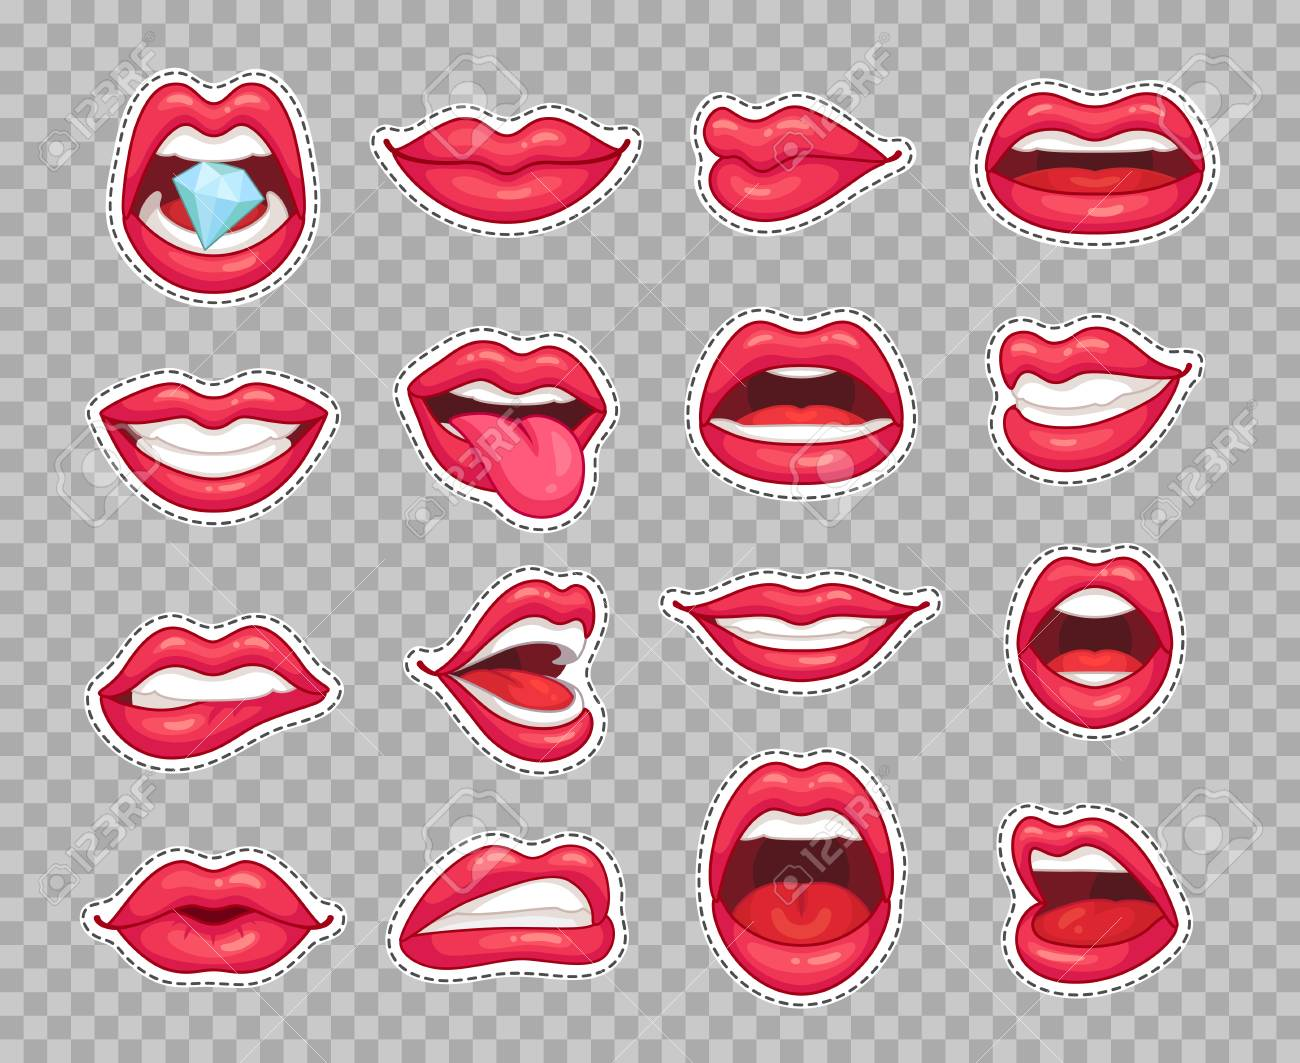 Candy Lips Patches Vintage 80s Fashion Cartoon Stickers With